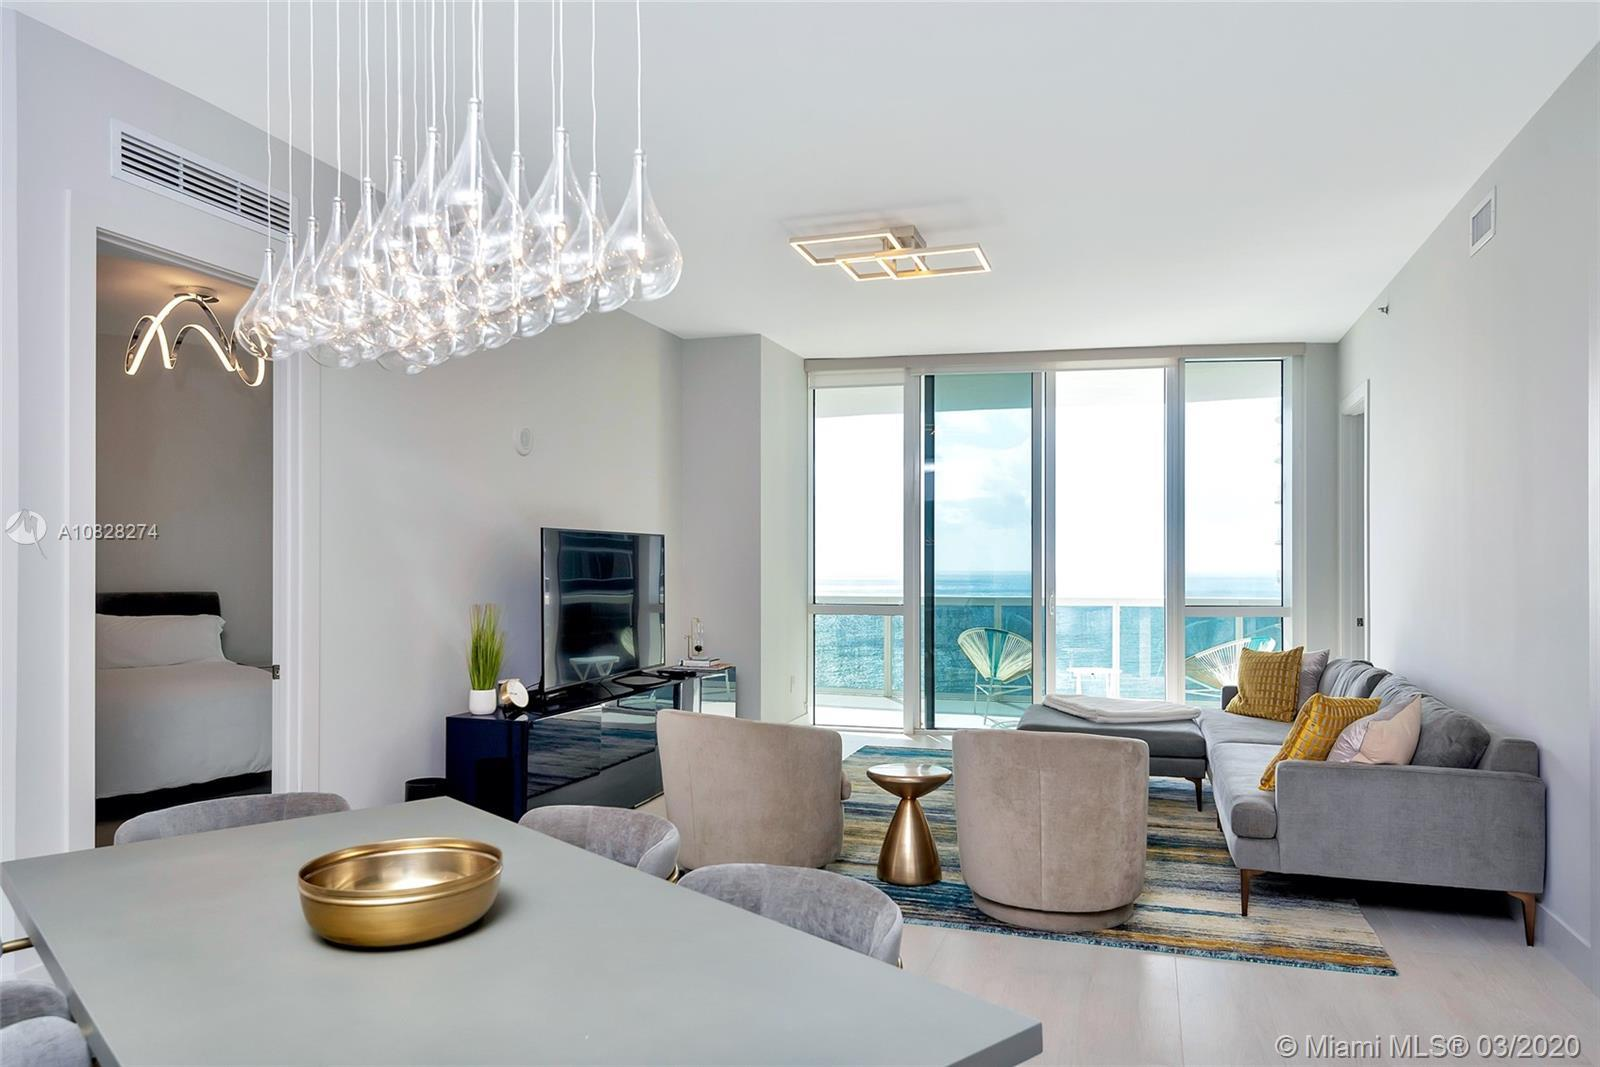 Unit 2107 is a design masterpiece. Completely upgraded and renovated with Porcelain floors throughou